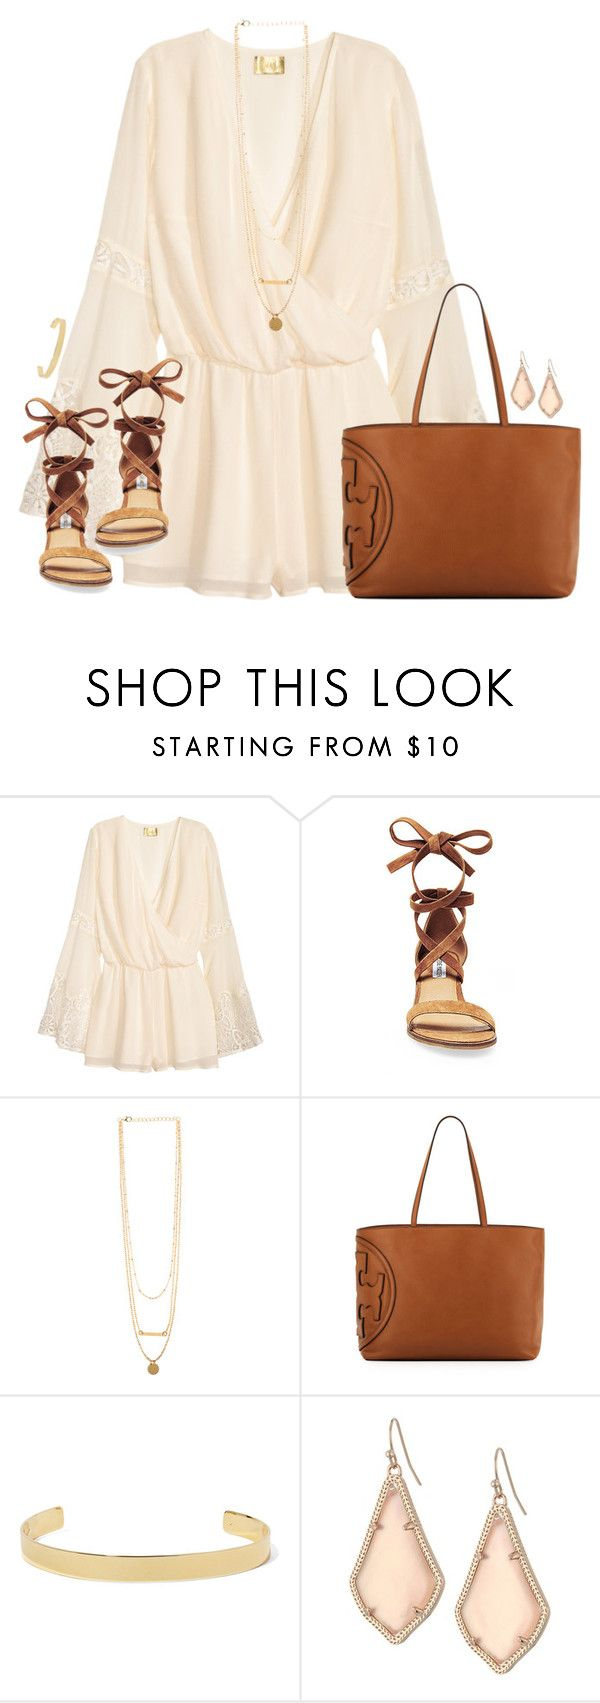 """""""Thursday's"""" by kaley-ii ❤ liked on Polyvore featuring H&M, Steve Madden, Tory Burch, Jennifer Fisher and Kendra Scott"""